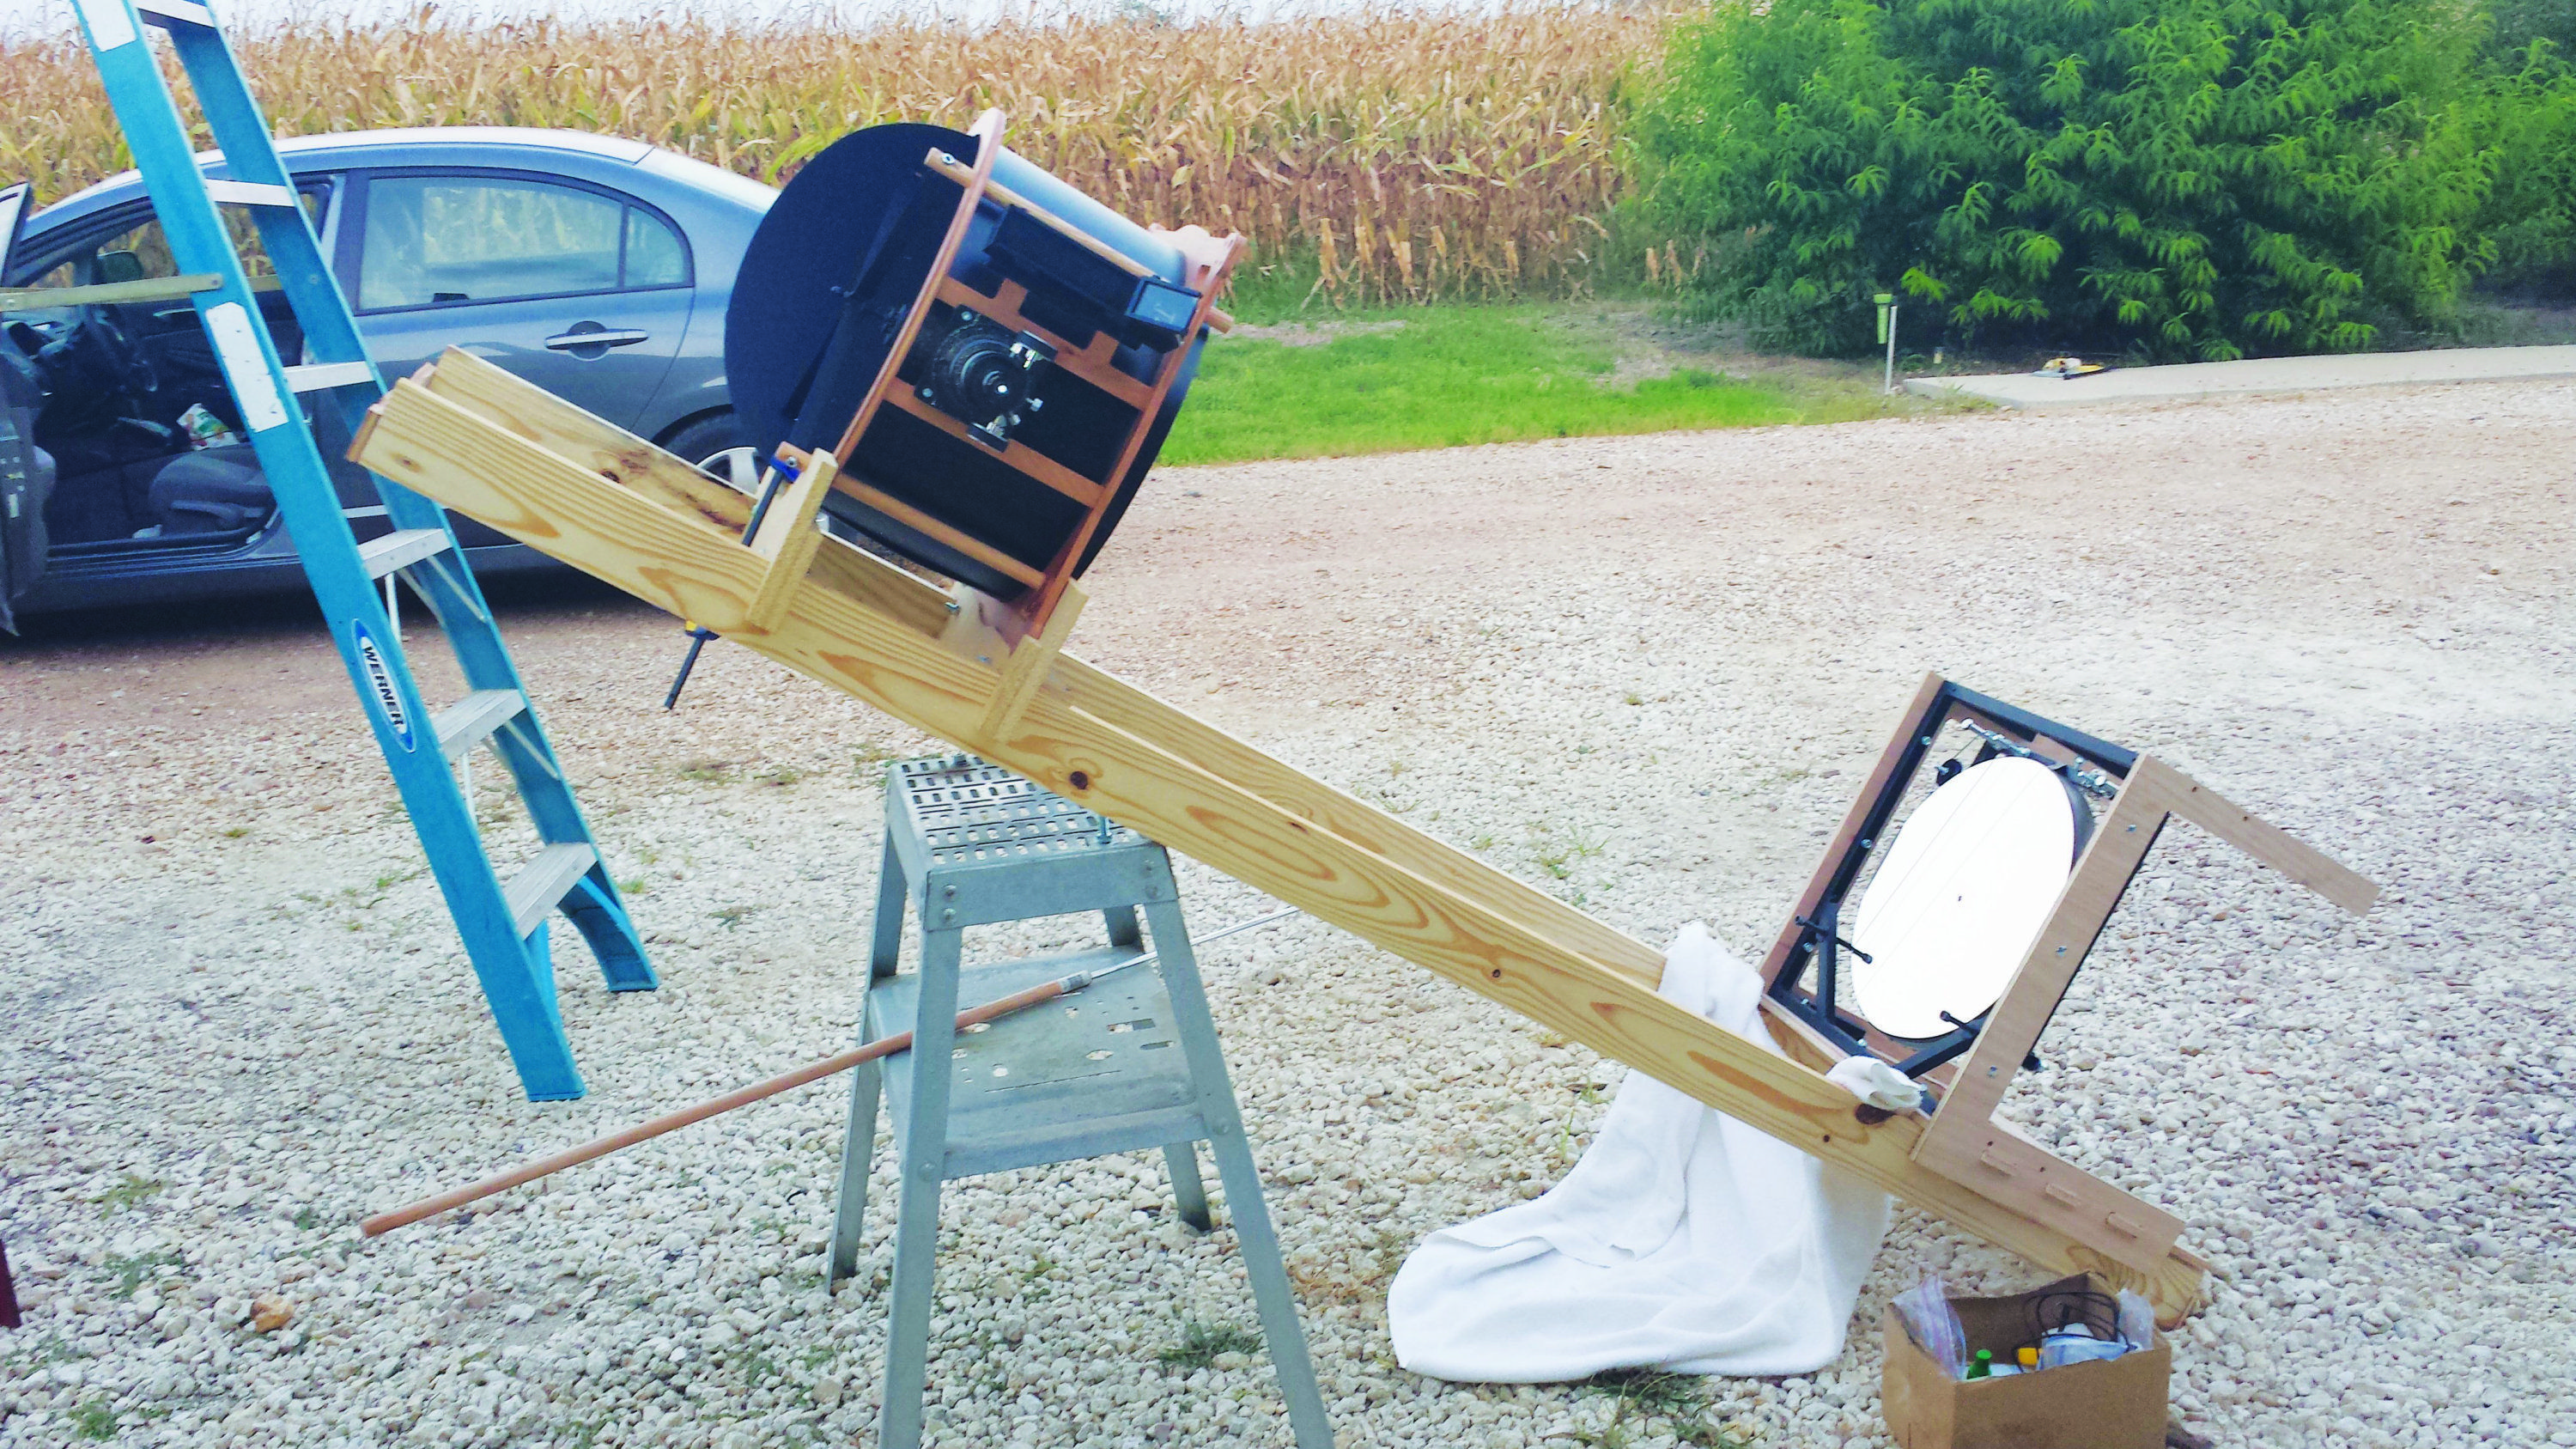 Amateur Telescope Builder